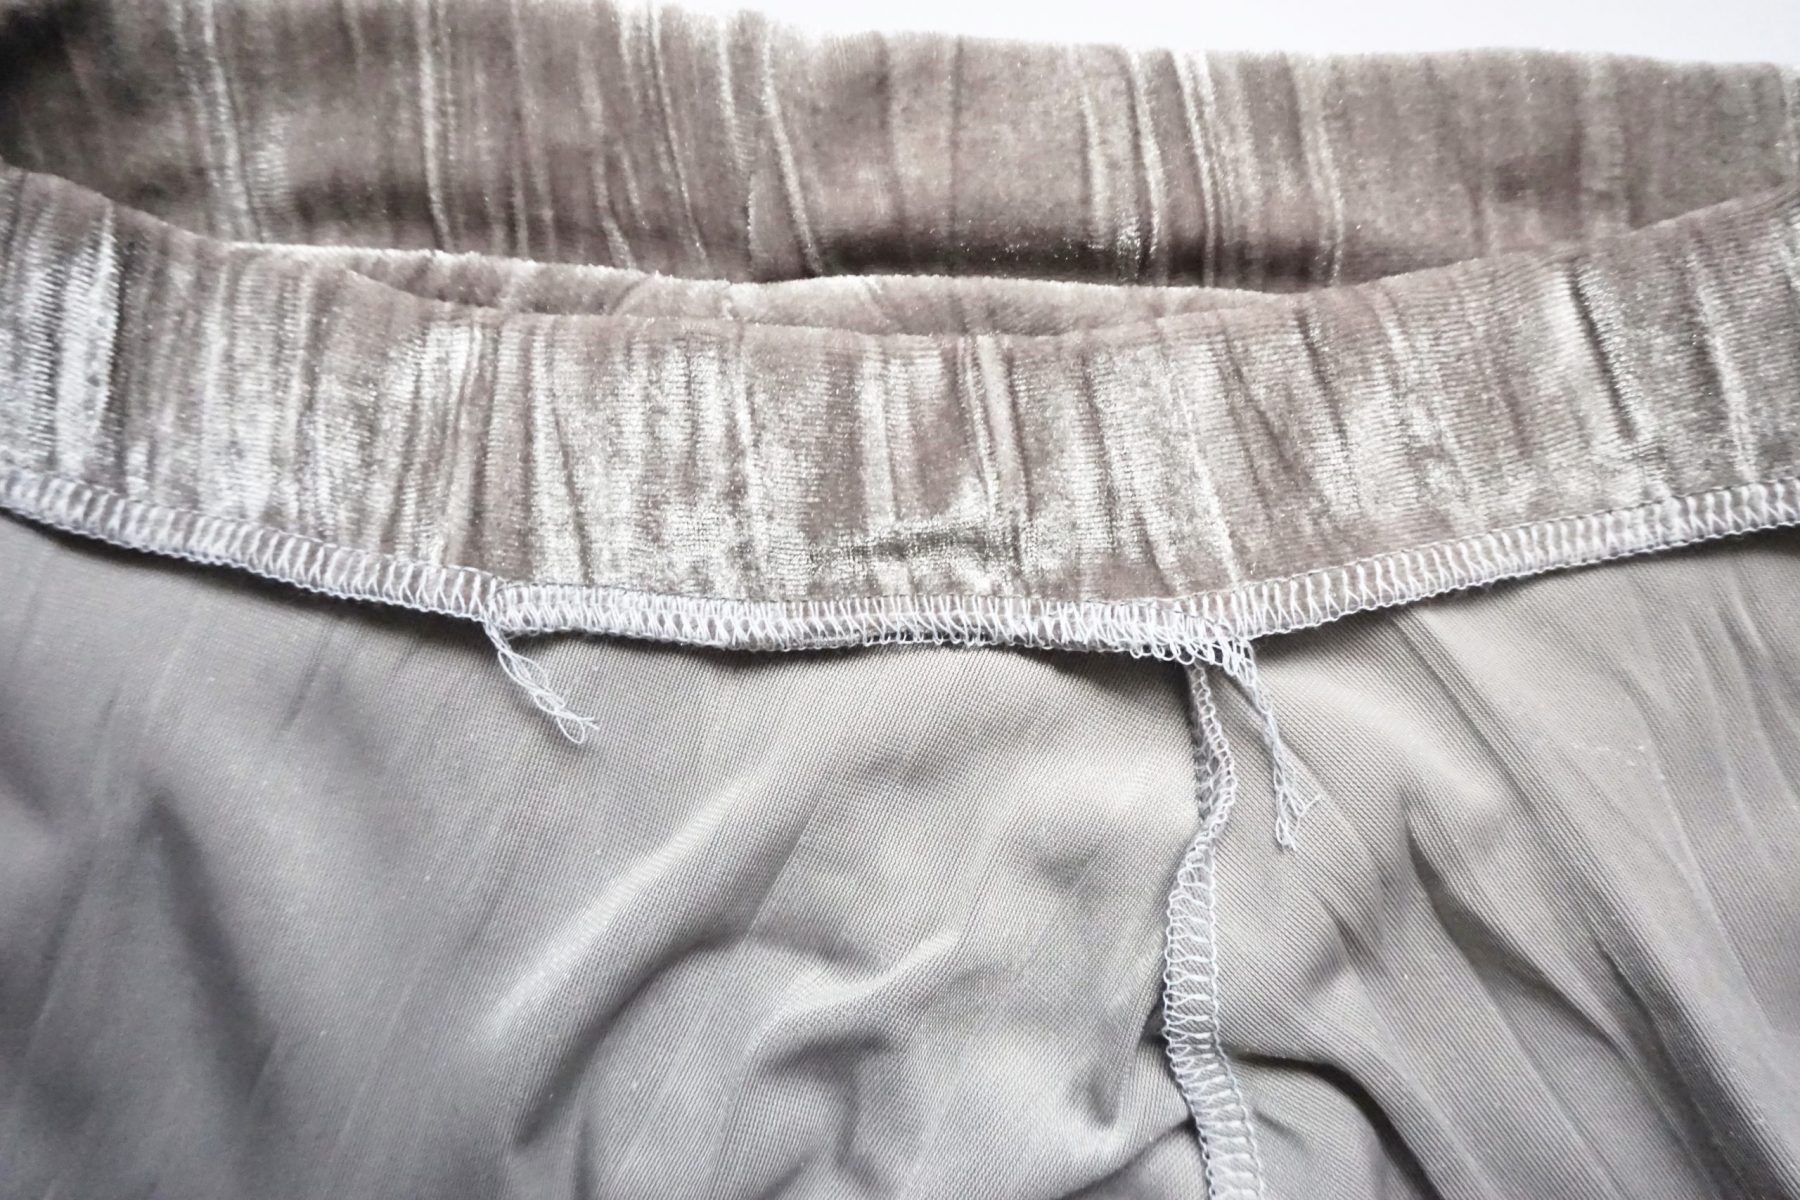 Now close the gap in the waistband seam.